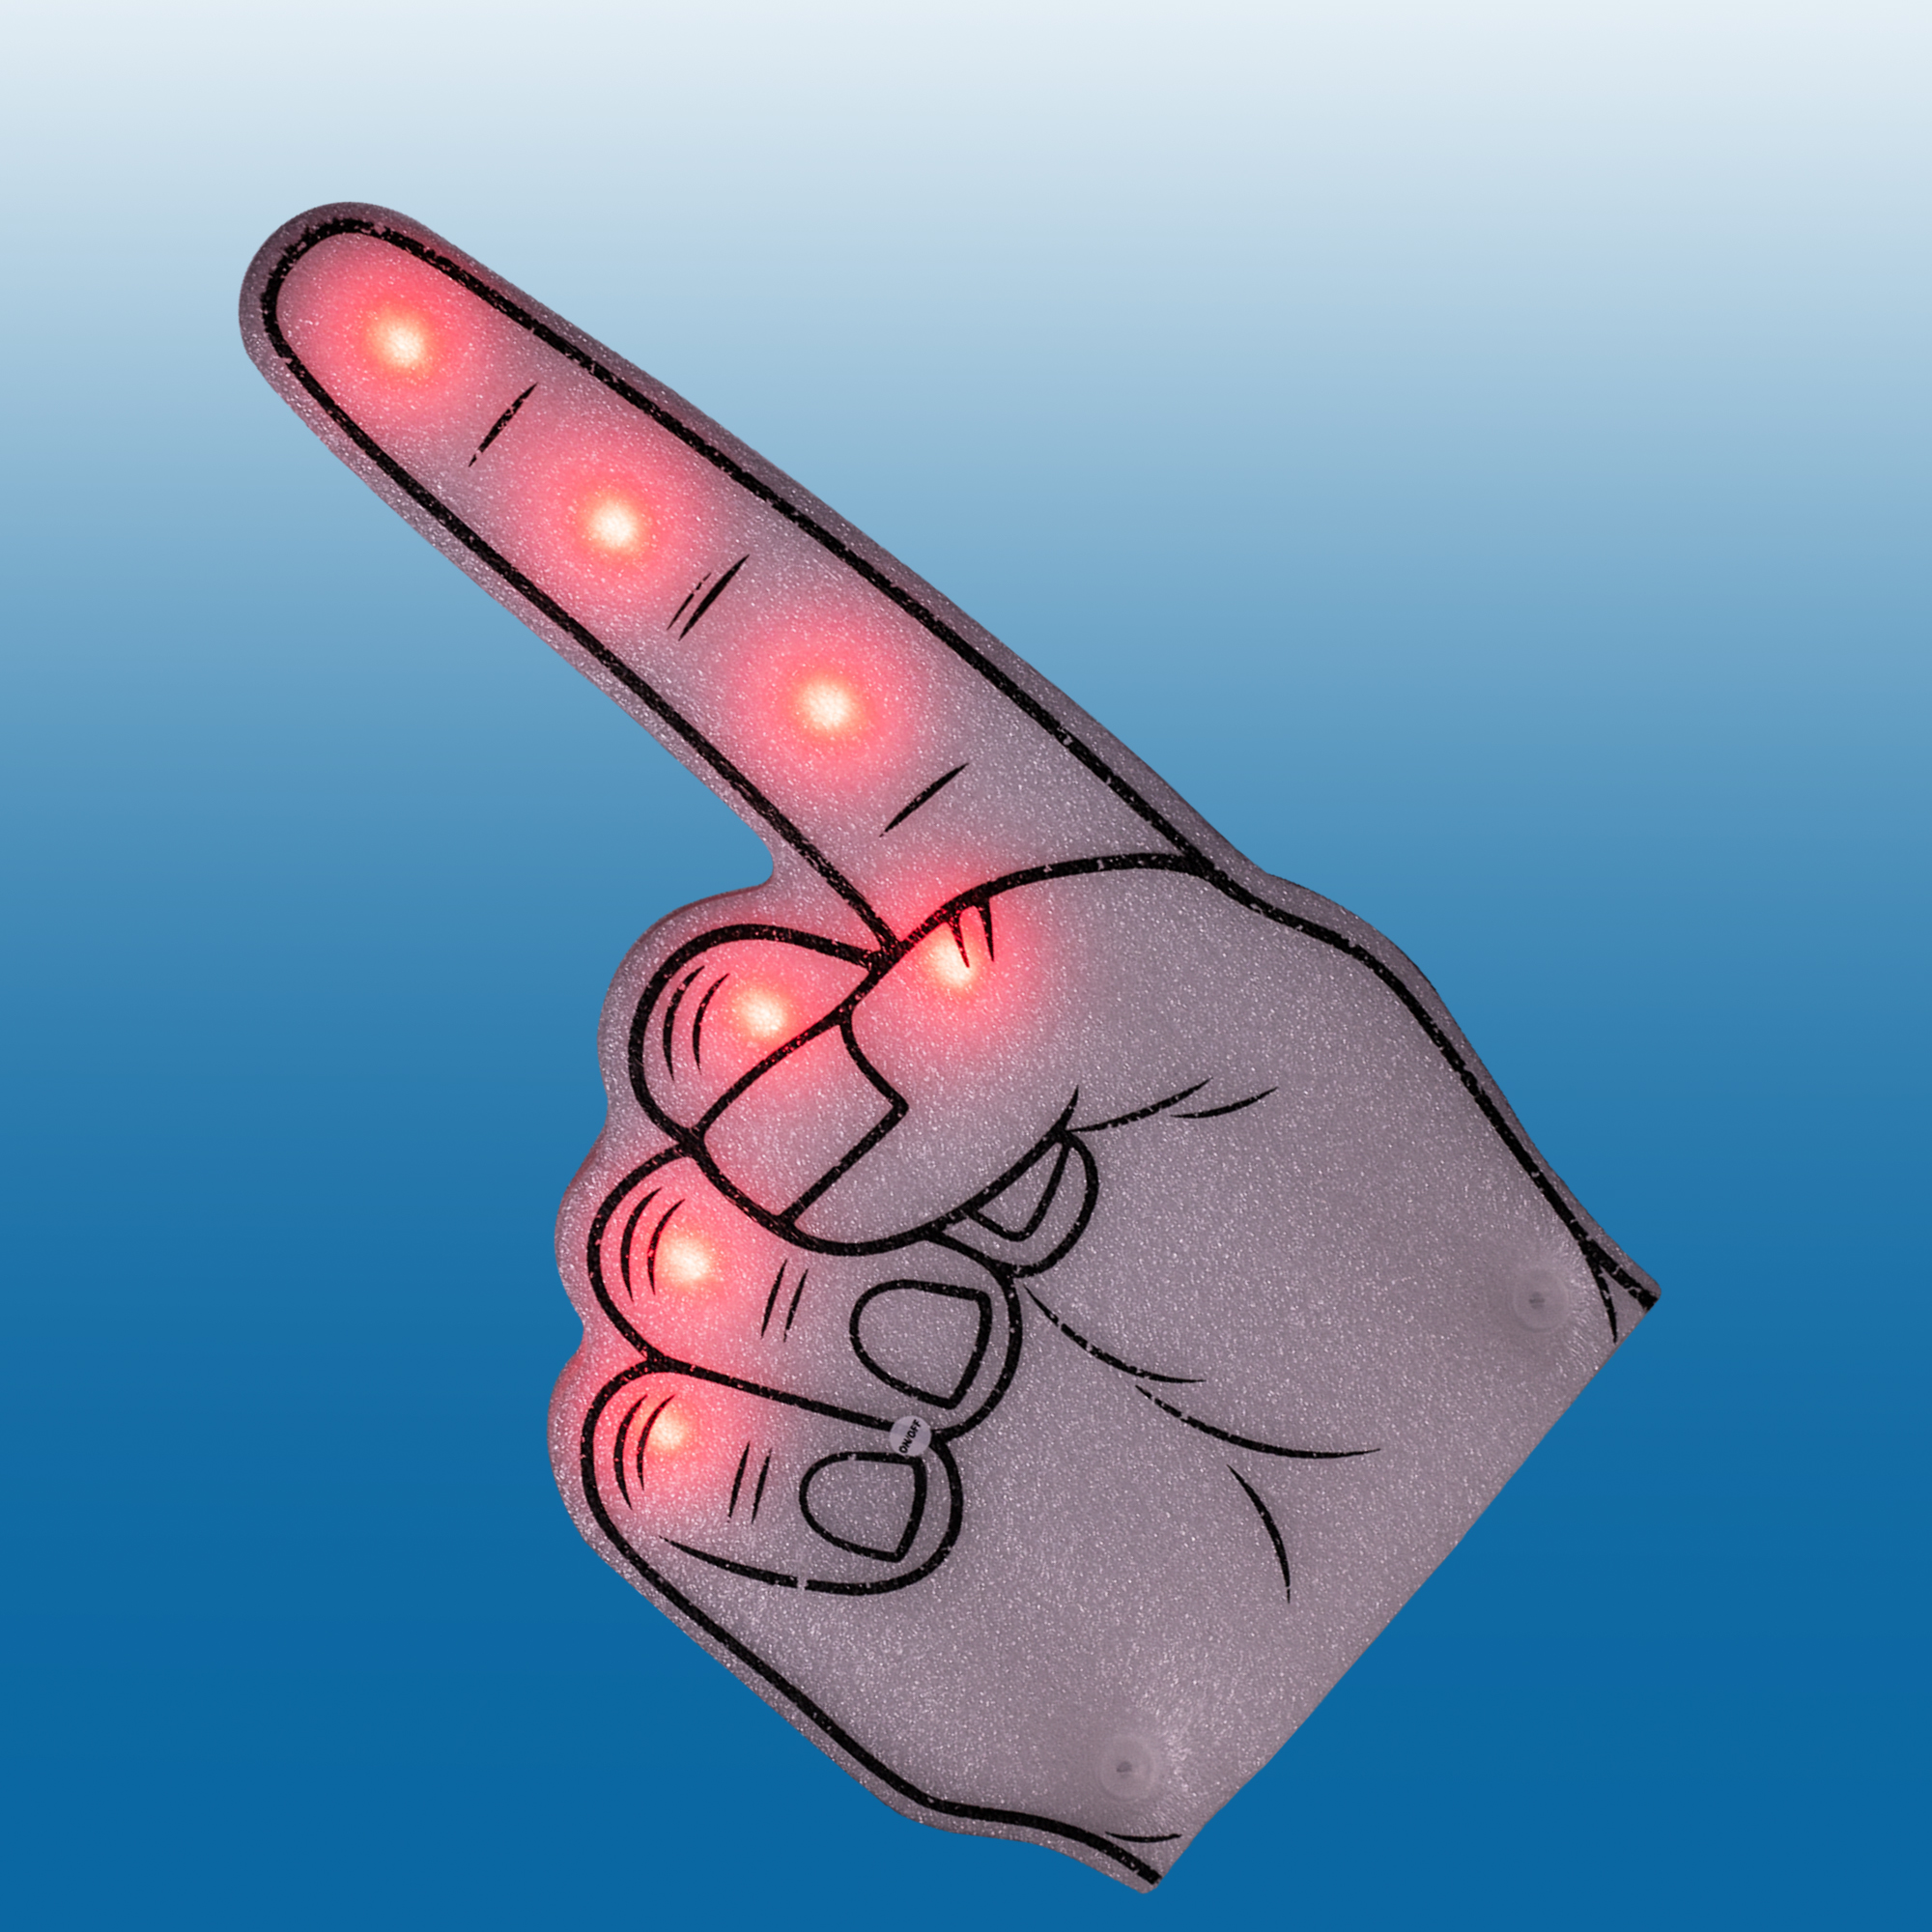 Fun Central AI632 LED Light Up Foam Finger - Red